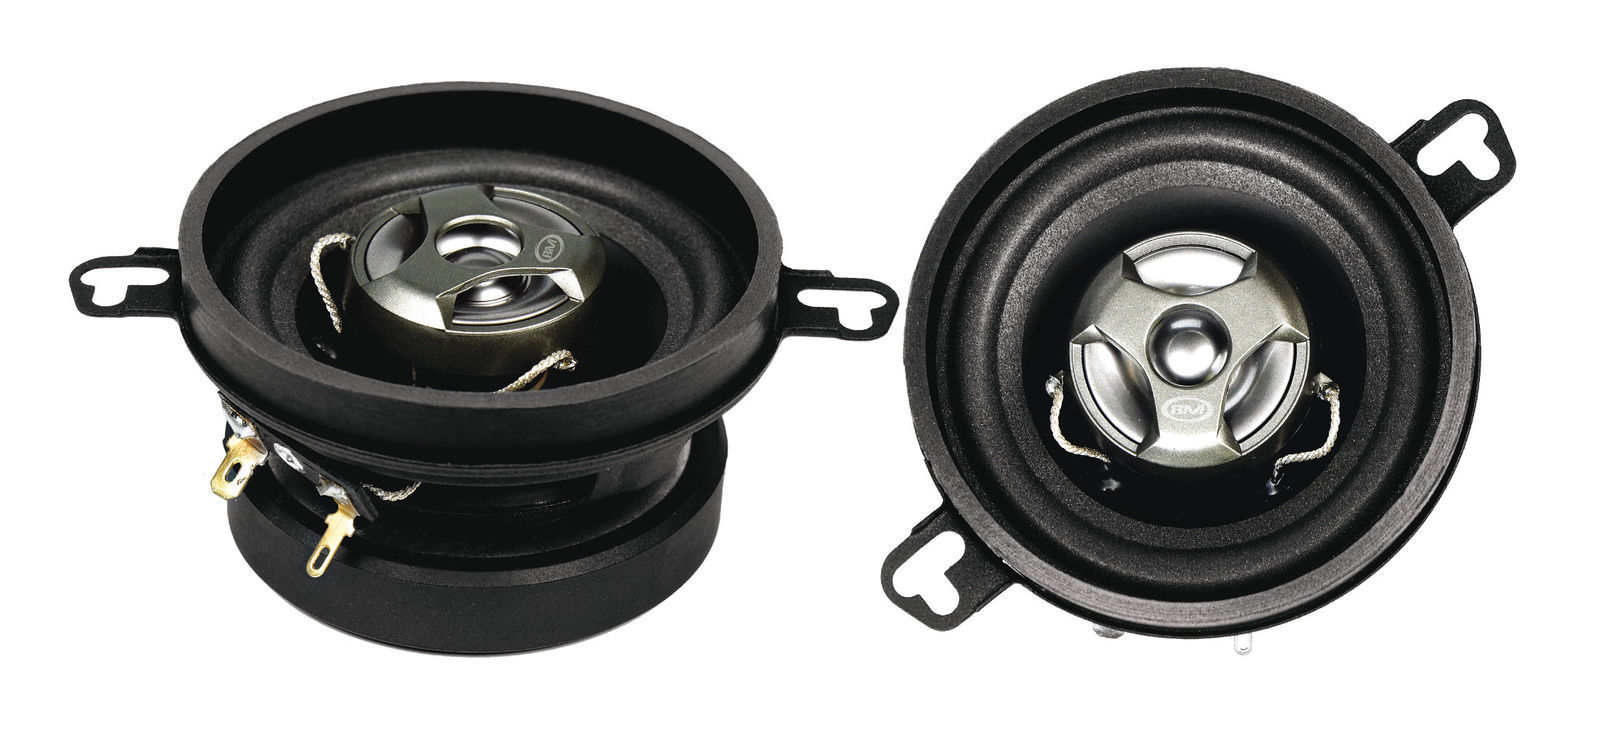 "Buy Boschmann 3.5"" / 87mm 200 Watt 2-Way Car Stereo Speakers Pair in NZ New Zealand."